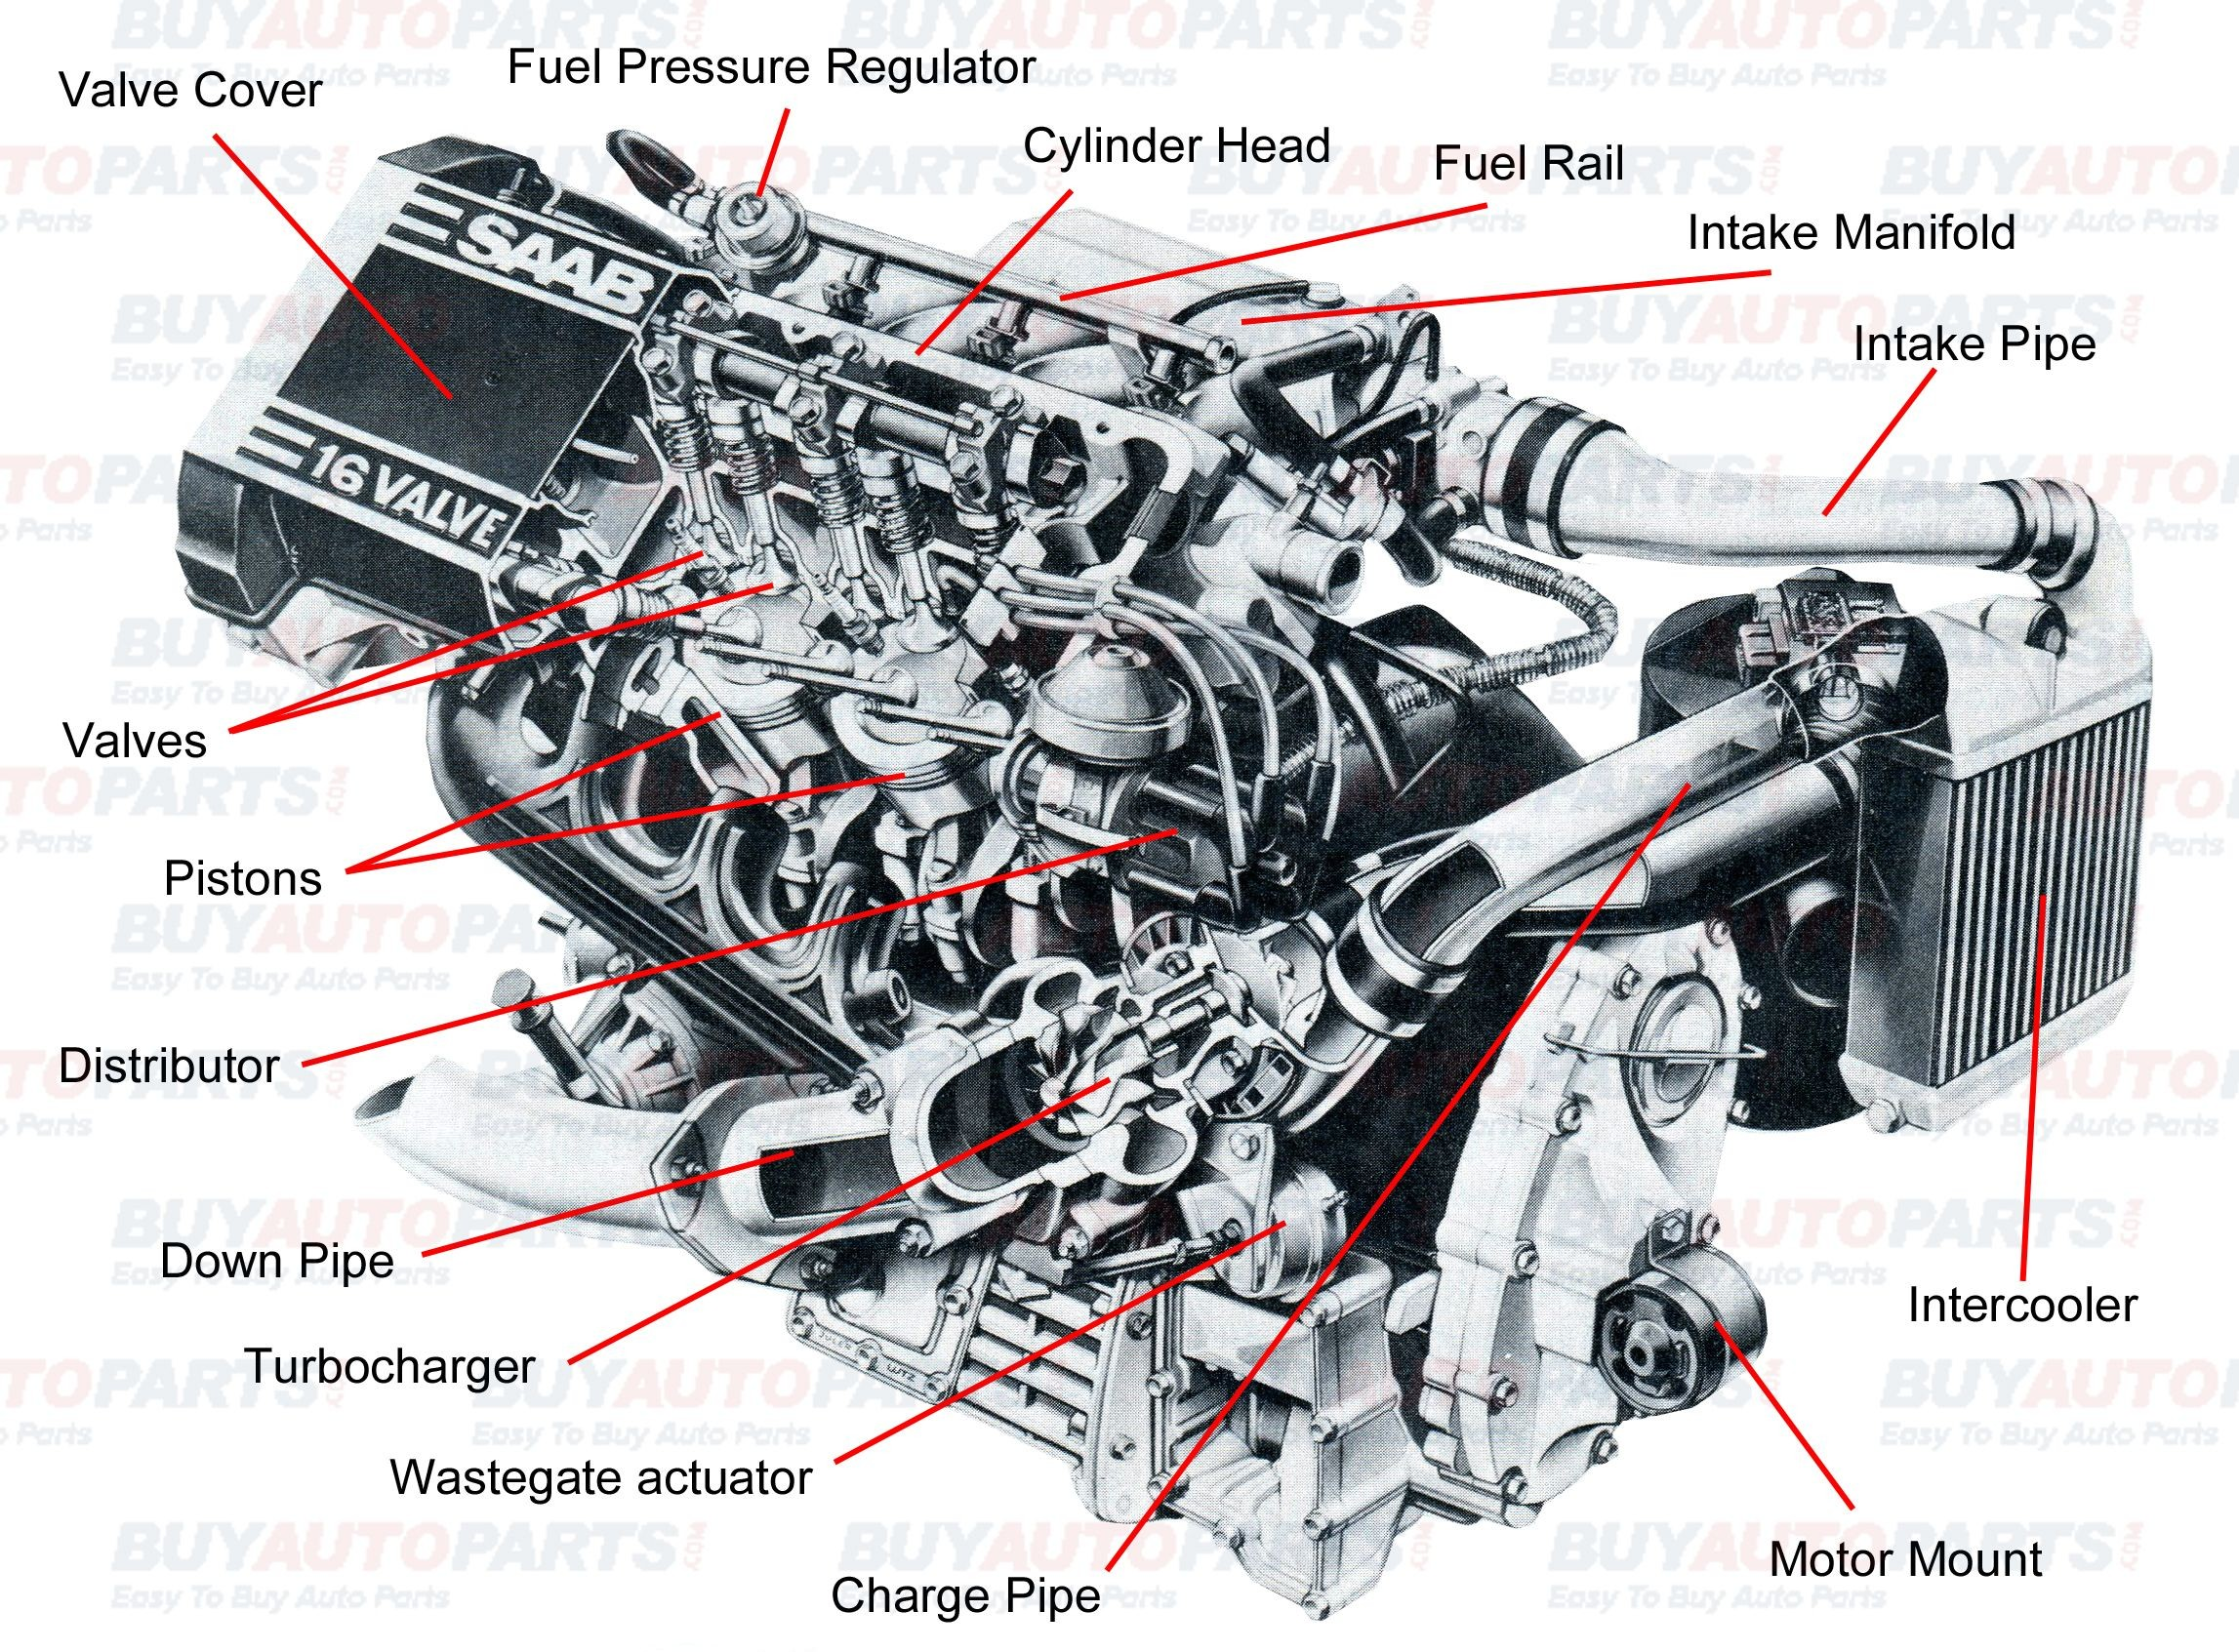 Car Components Diagram Pin by Jimmiejanet Testellamwfz On What Does An Engine with Of Car Components Diagram